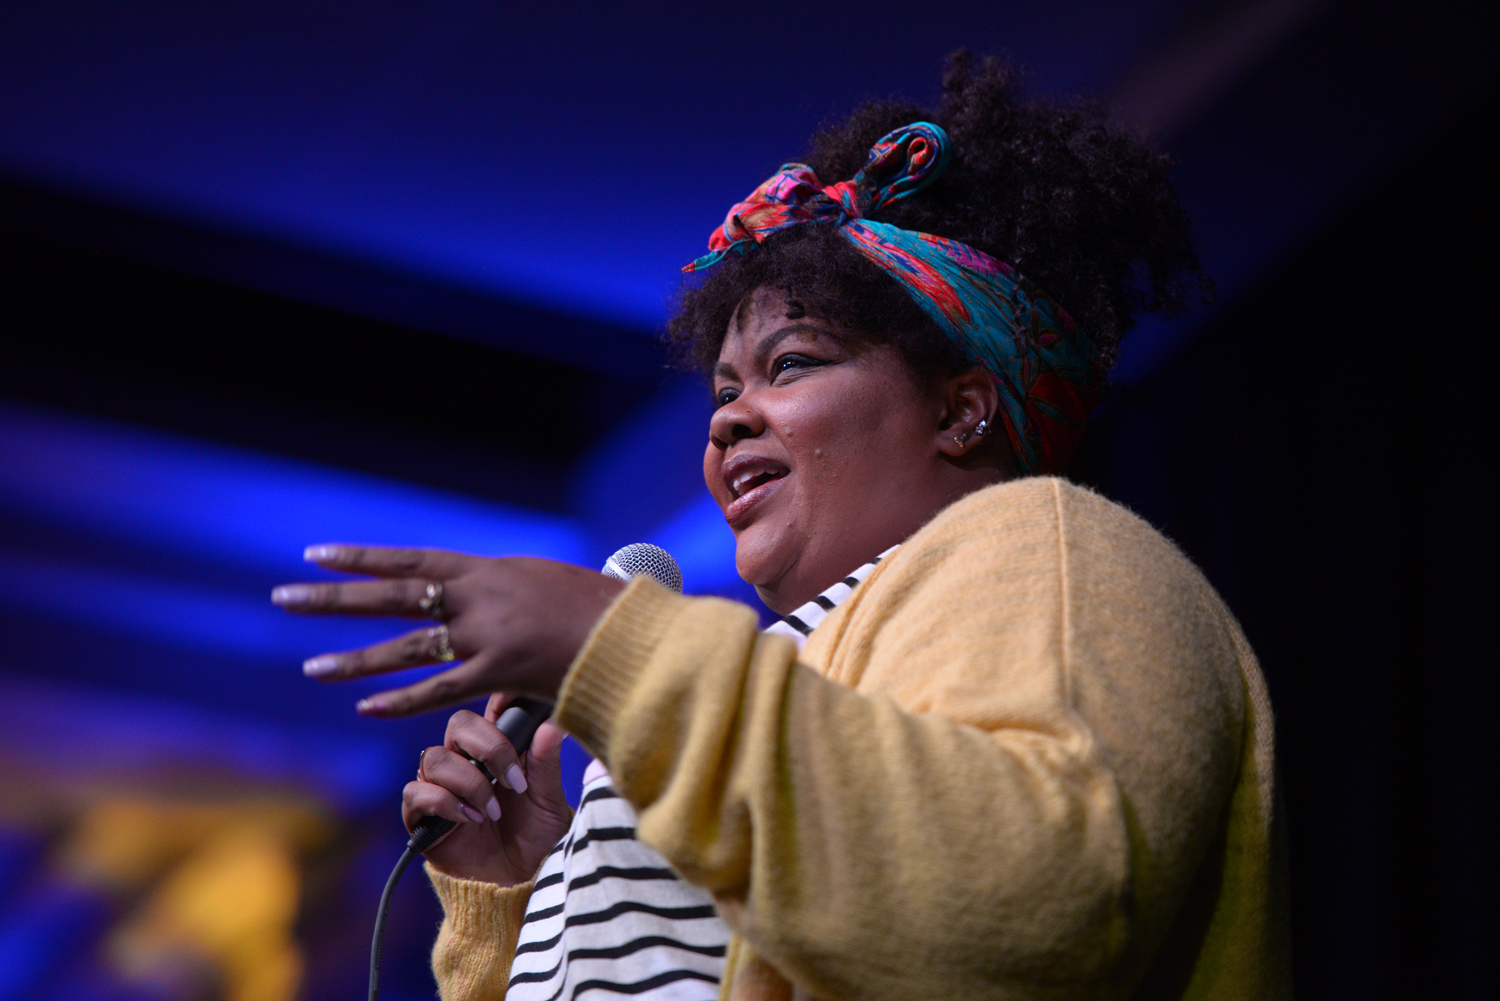 Actress and comedian Nicole Byer jokes about the size of Steve Harvey's teeth to an audience of 300 people during her stand-up performance in the WPU Assembly Room Thursday evening.